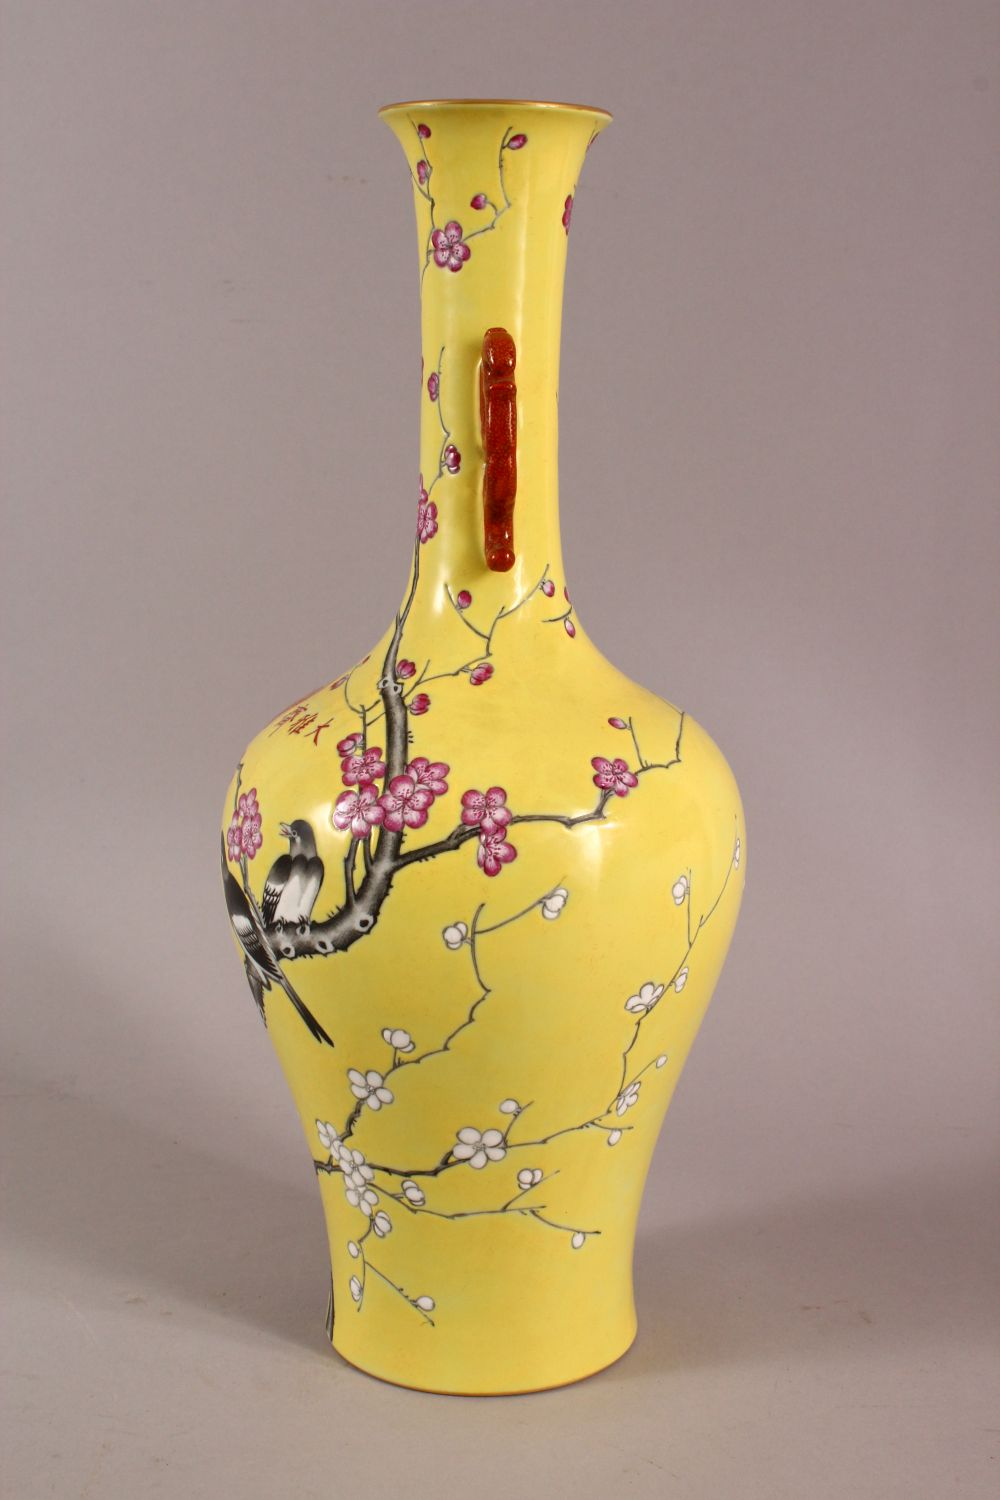 A CHINESE YELLOW GLAZED FAMILLE ROSE PORCELAIN VASE, decorated with birds in trees, with a mark - Image 6 of 9